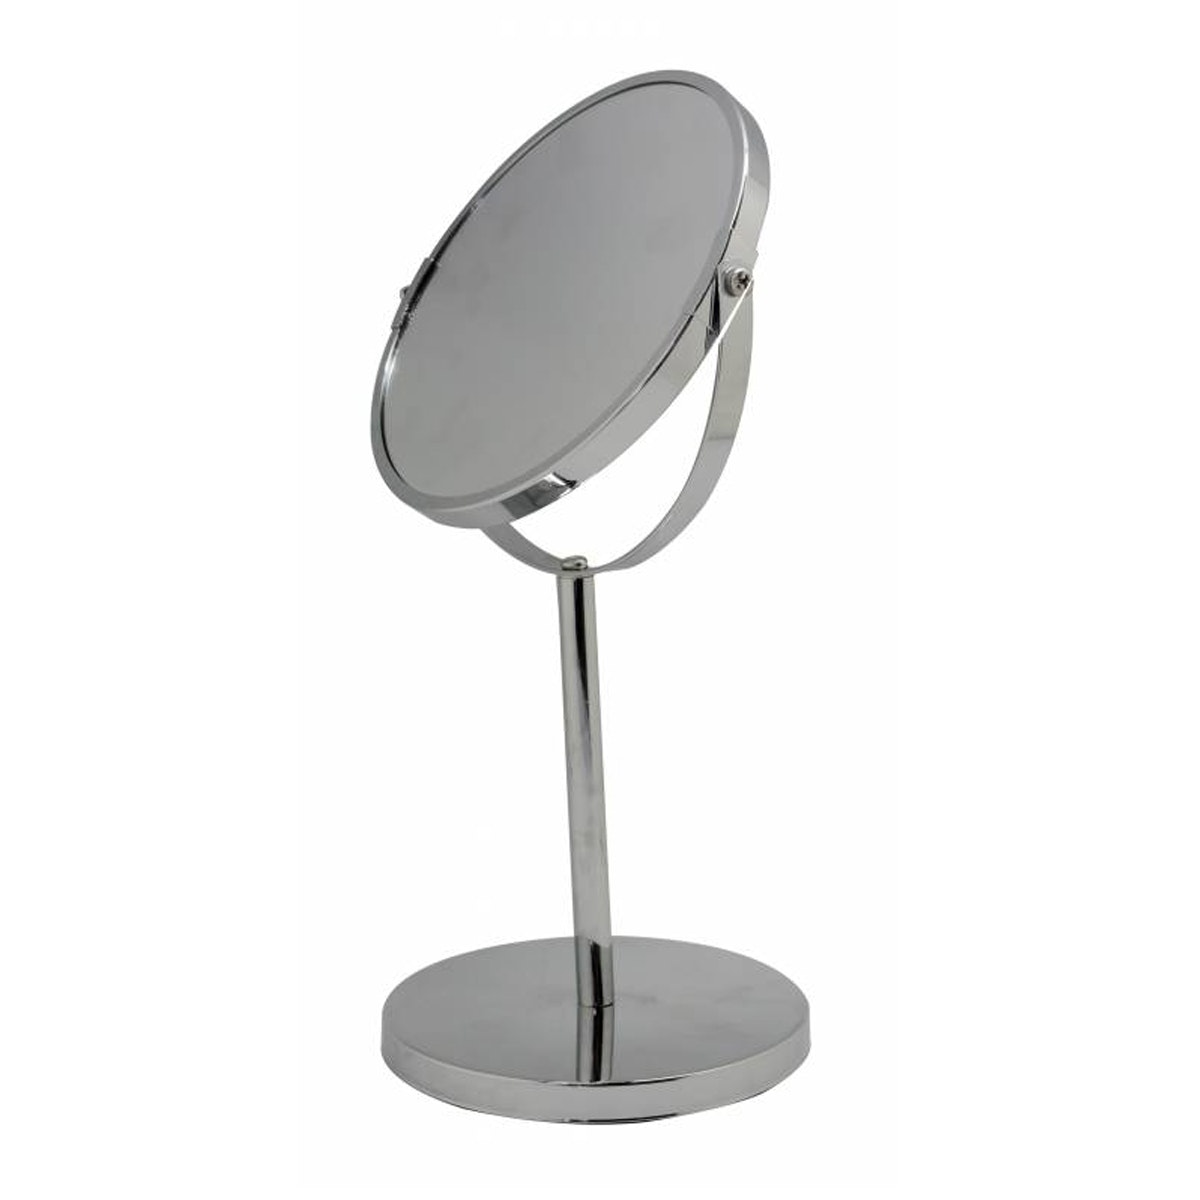 JYSK Double sided mirror Mendle H35cm